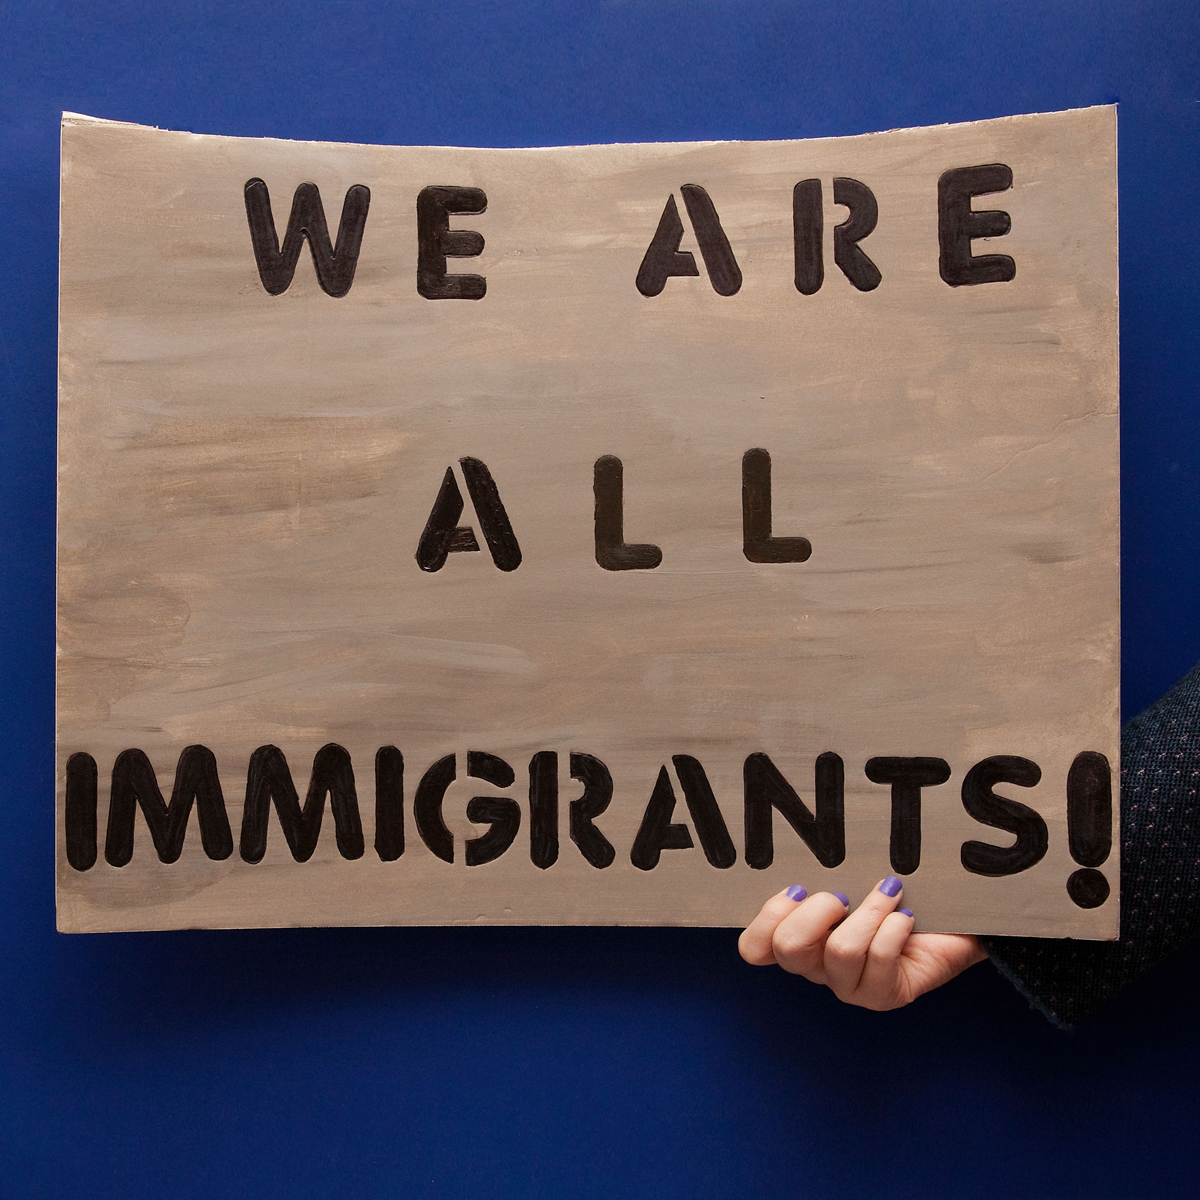 45 Protest Signs_Brandon and Olivia Locher_13_We Are All Imigrants